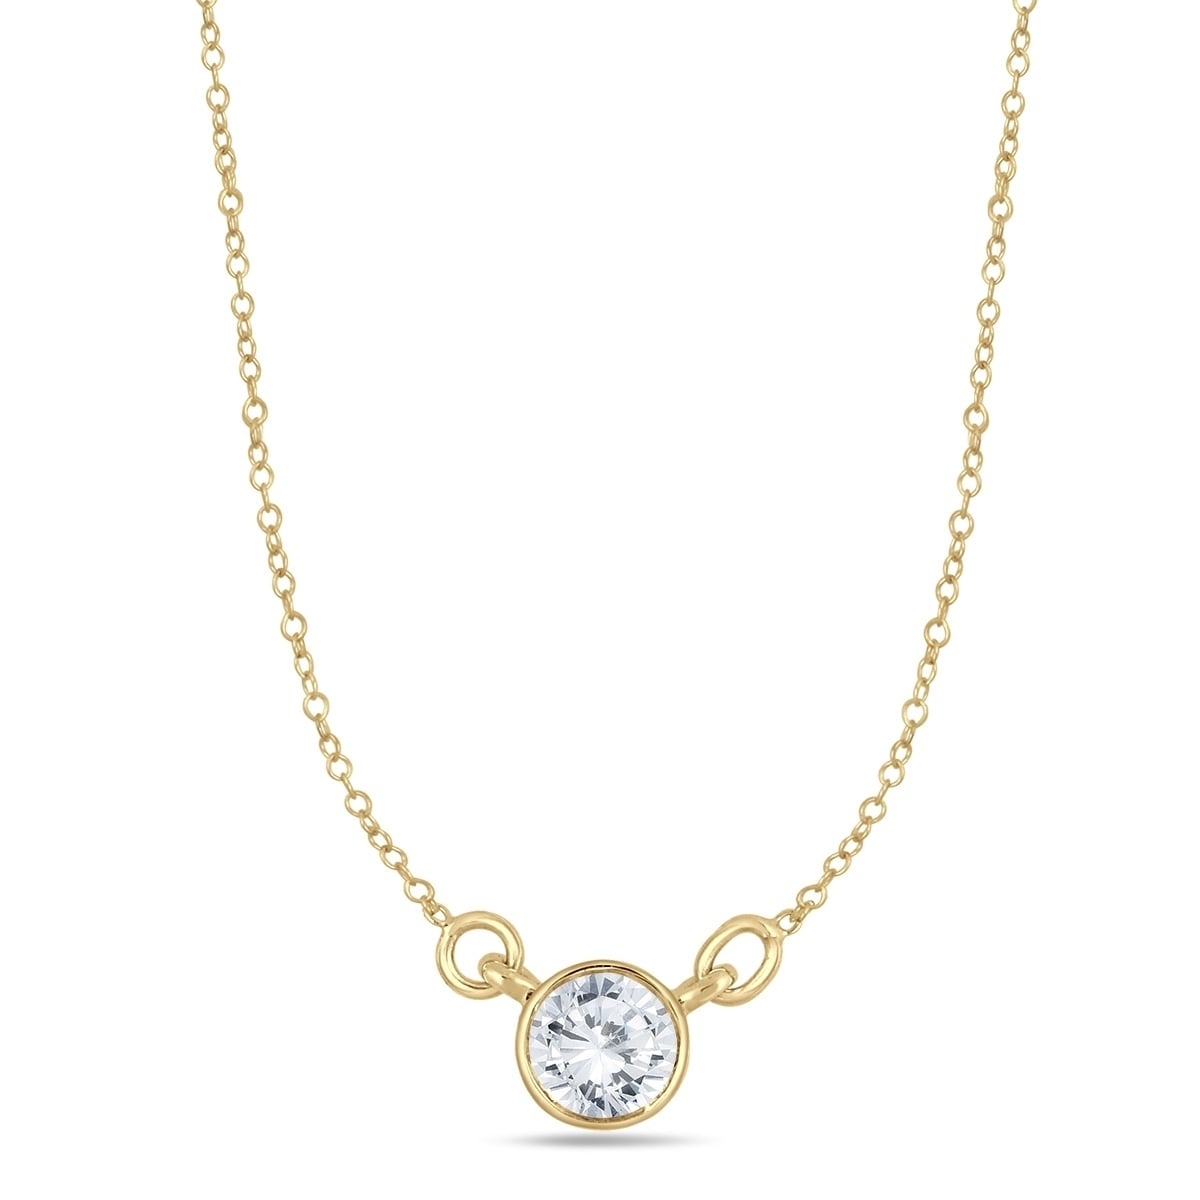 cross tif usm w pdpimgshortdescription necklace sharpen diamond fpx op ct pendant gold qlt yellow wid t resmode product in comp shop layer bezel exclusive